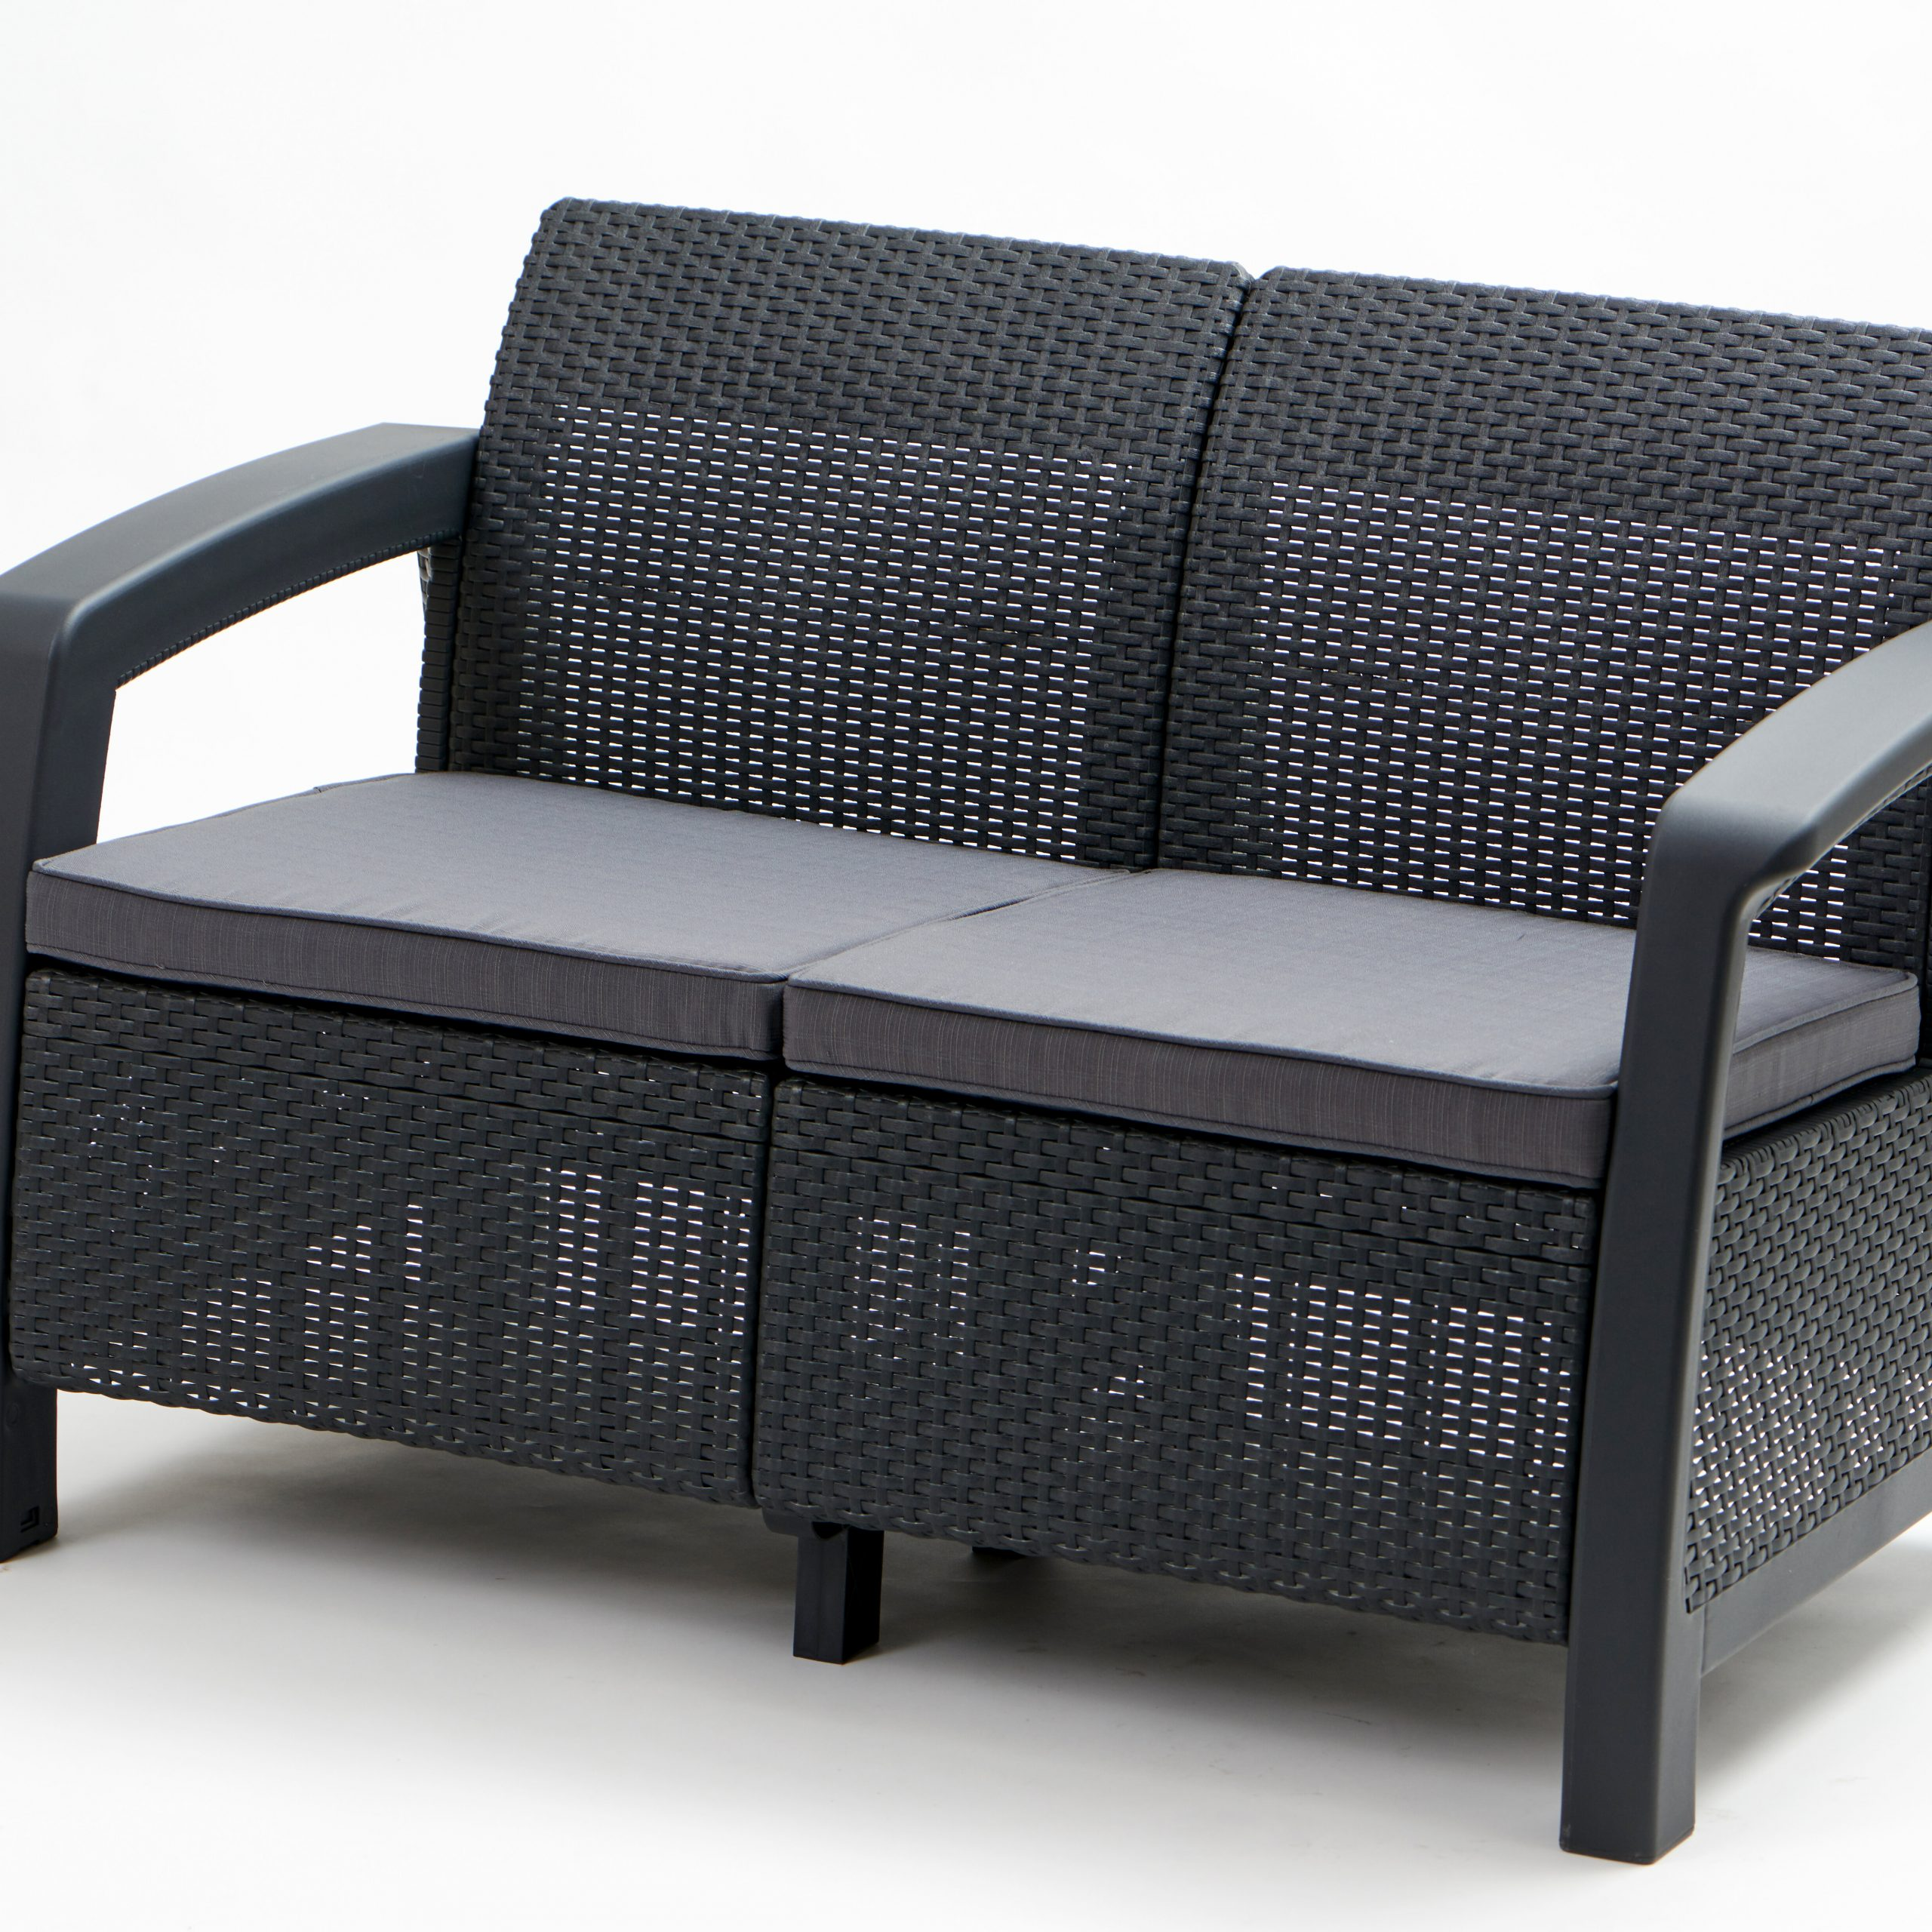 Wayfair Intended For Current Wakeland Wicker Loveseats With Cushions (View 11 of 25)